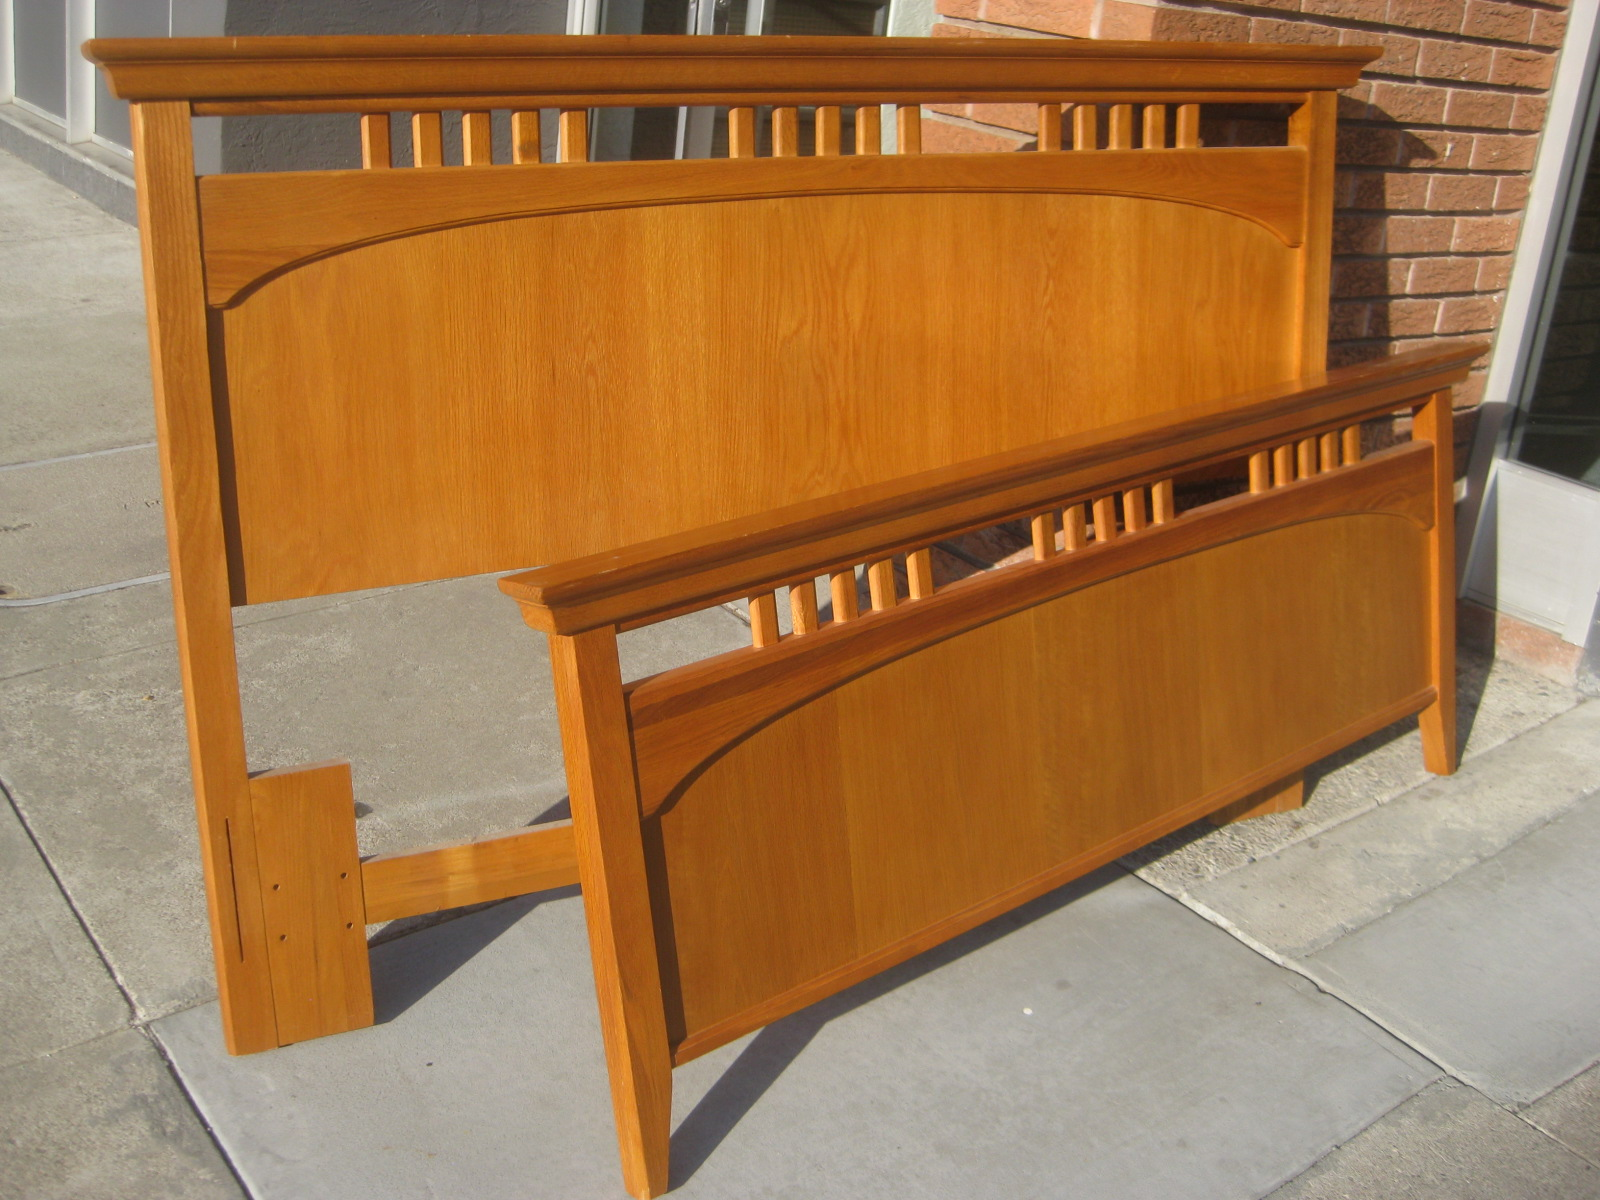 UHURU FURNITURE & COLLECTIBLES: SOLD - Queen Oak Bed Frame - $200